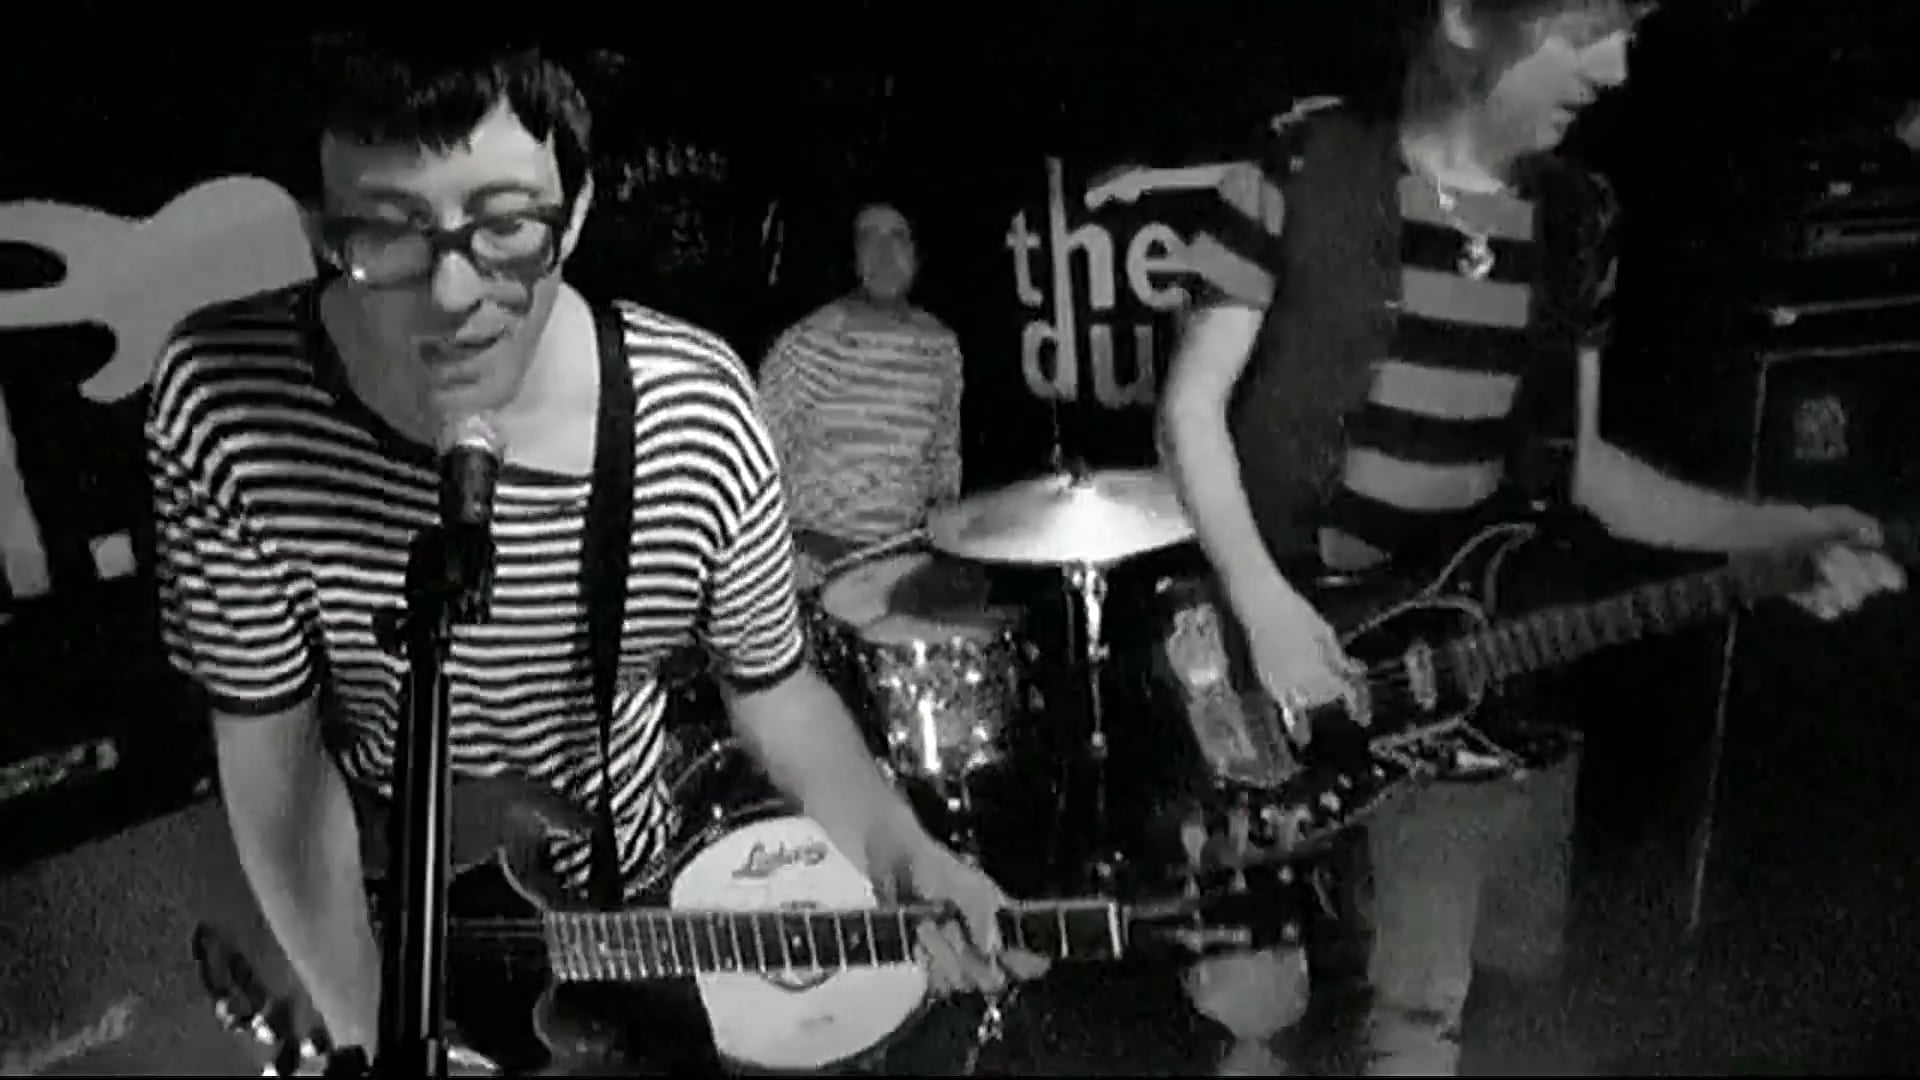 Graham Coxon - I Can't Look At Your Skin